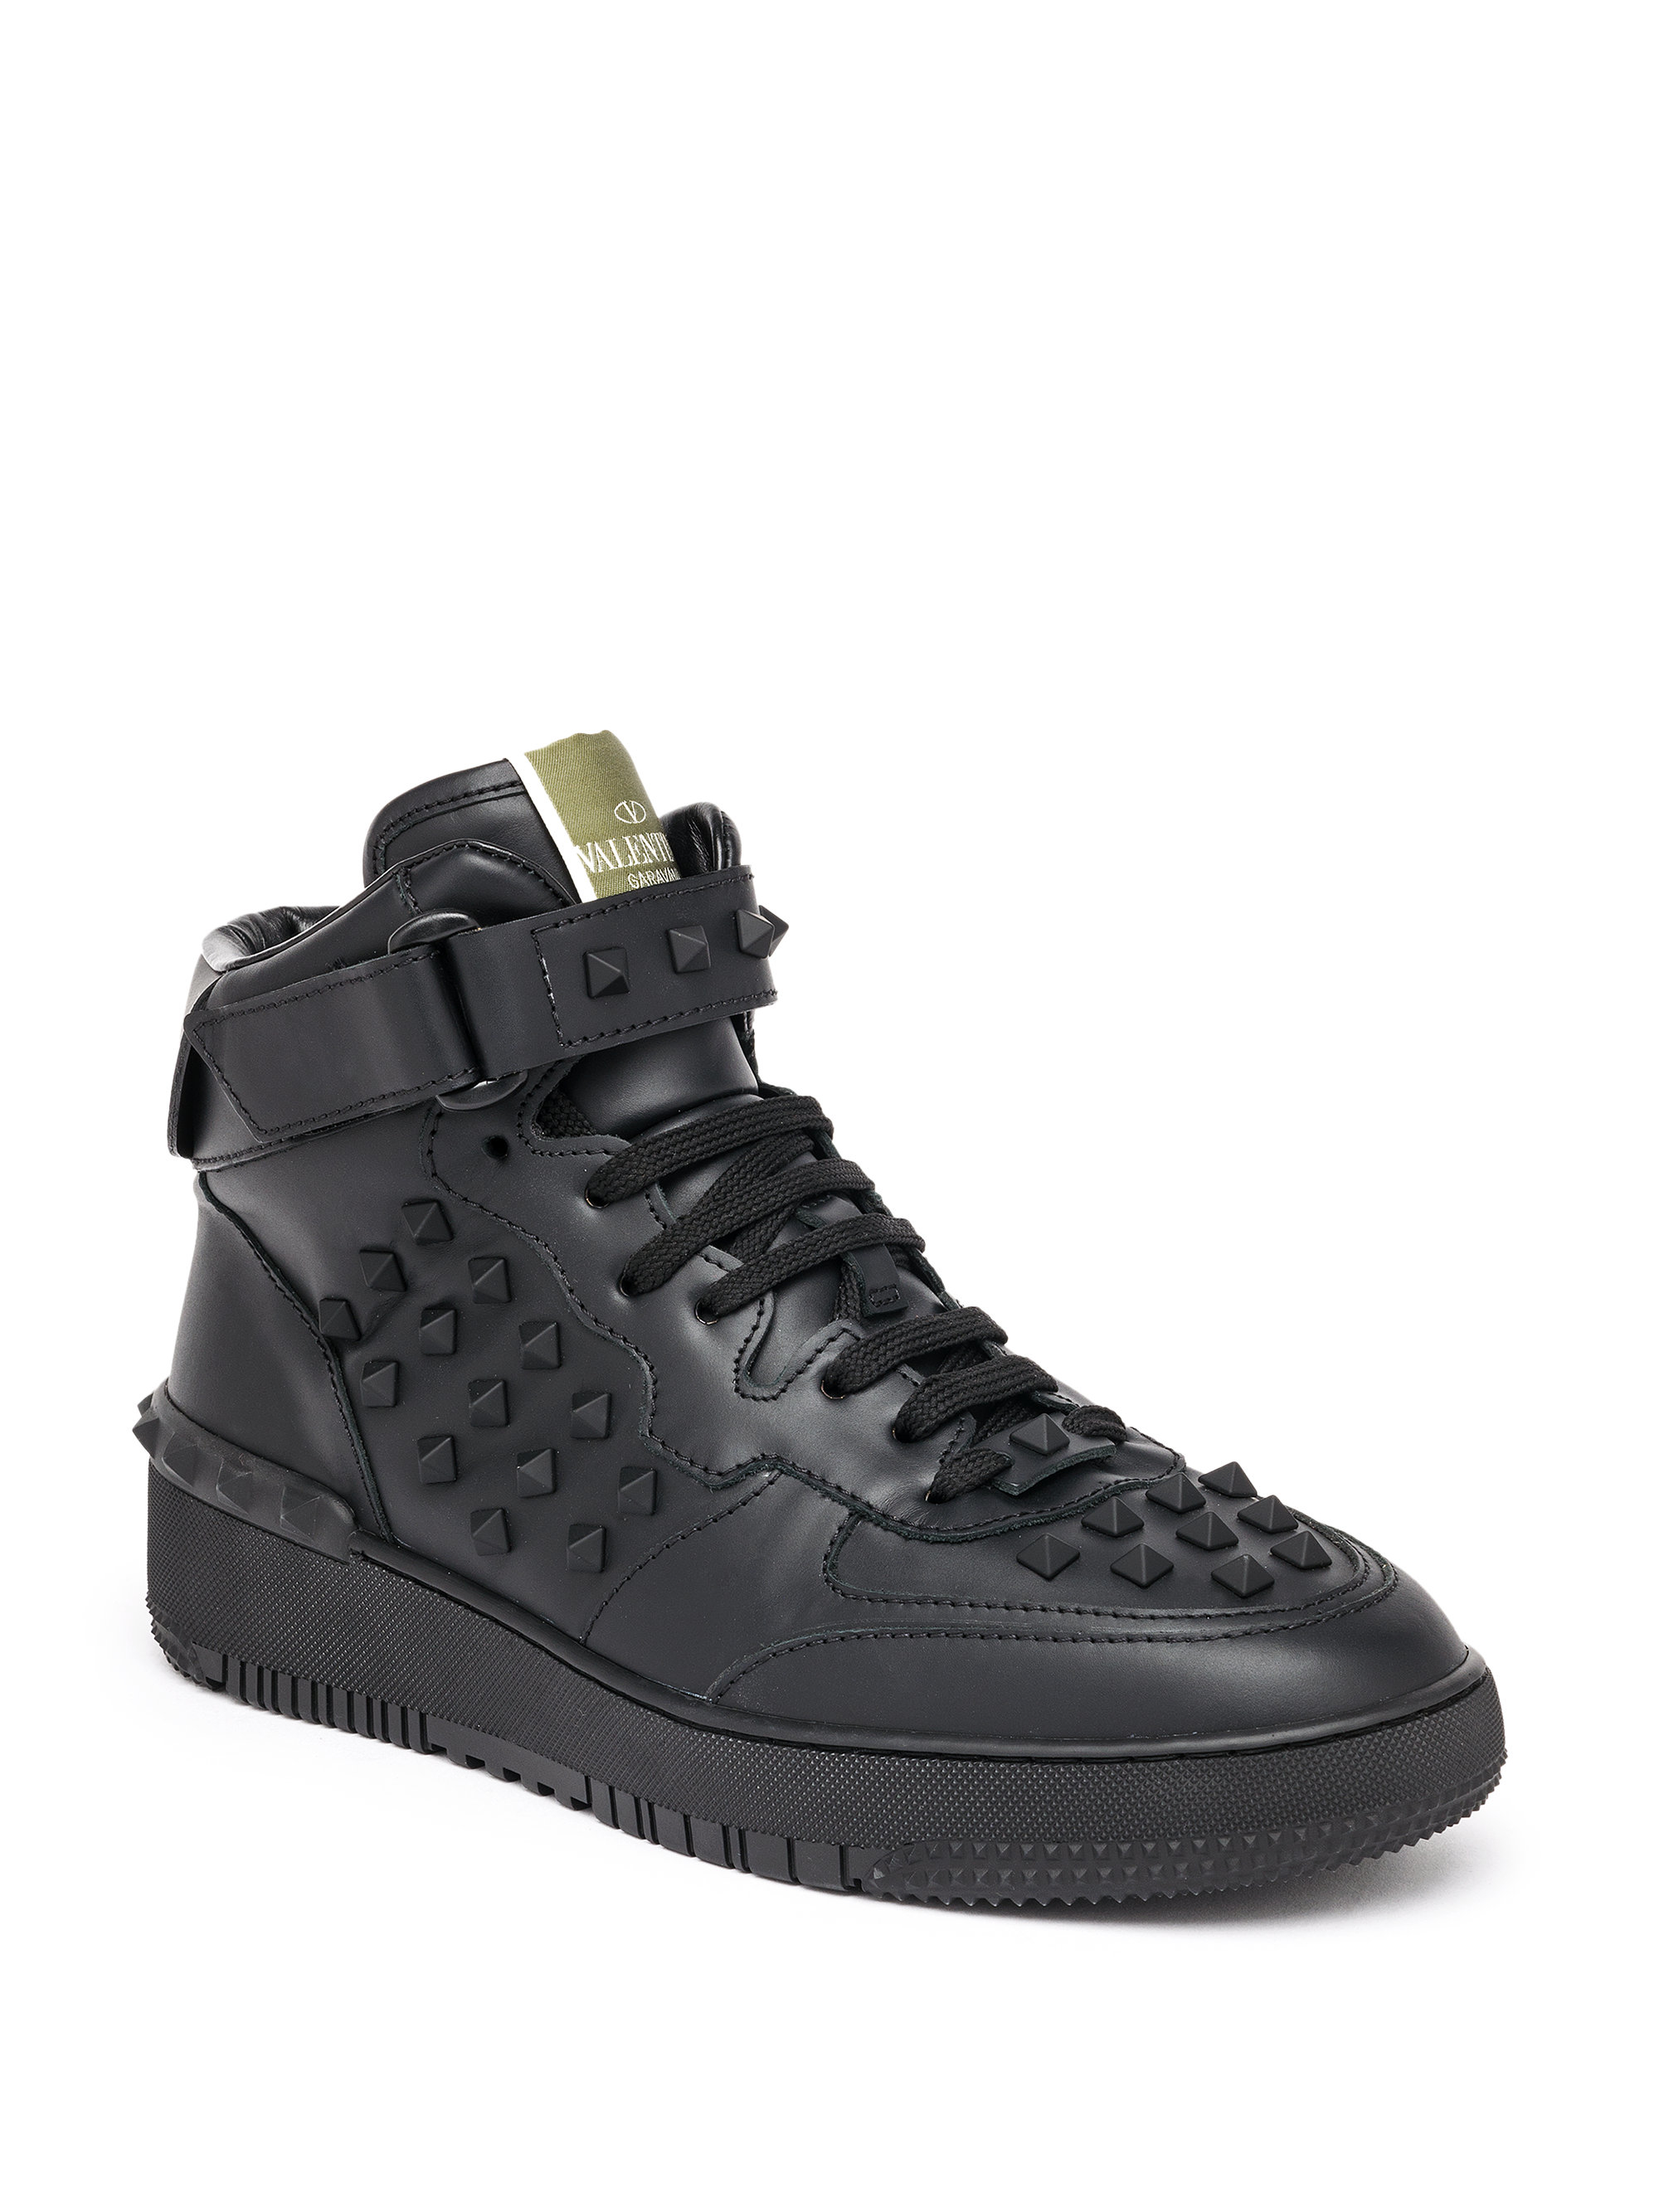 Black Leather Designer High Top Shoes